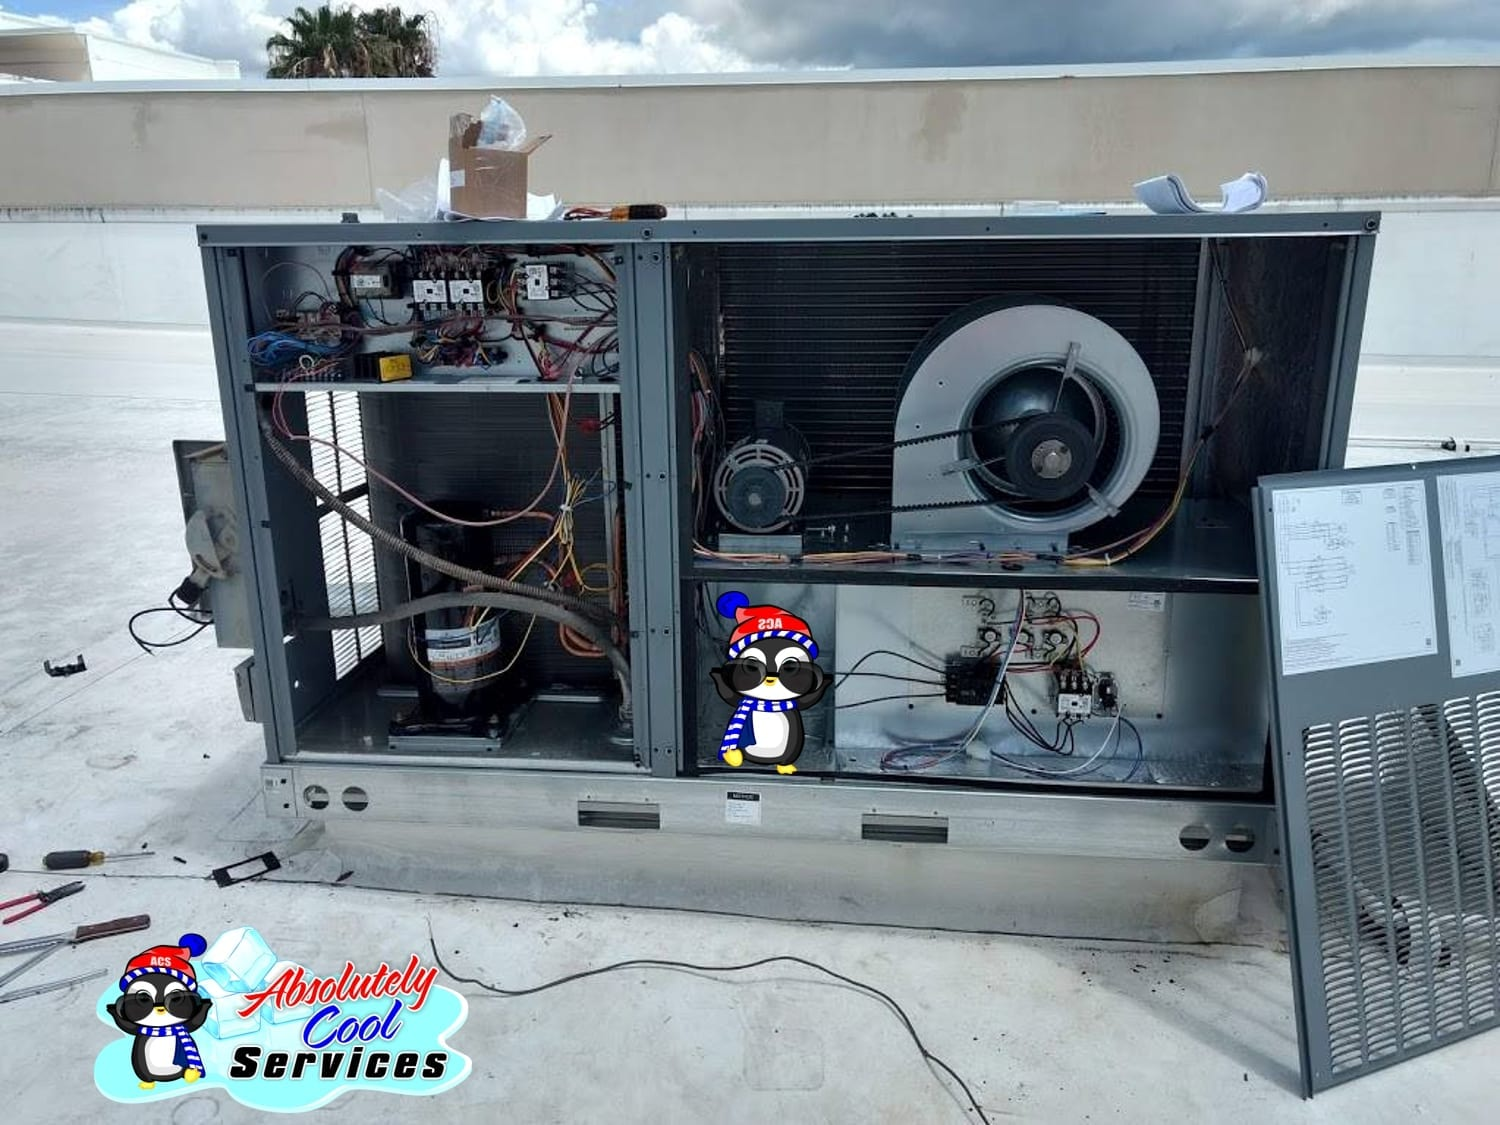 Roof Air Conditioning | Air Conditioning Diagnosis Service near West Palm Beach